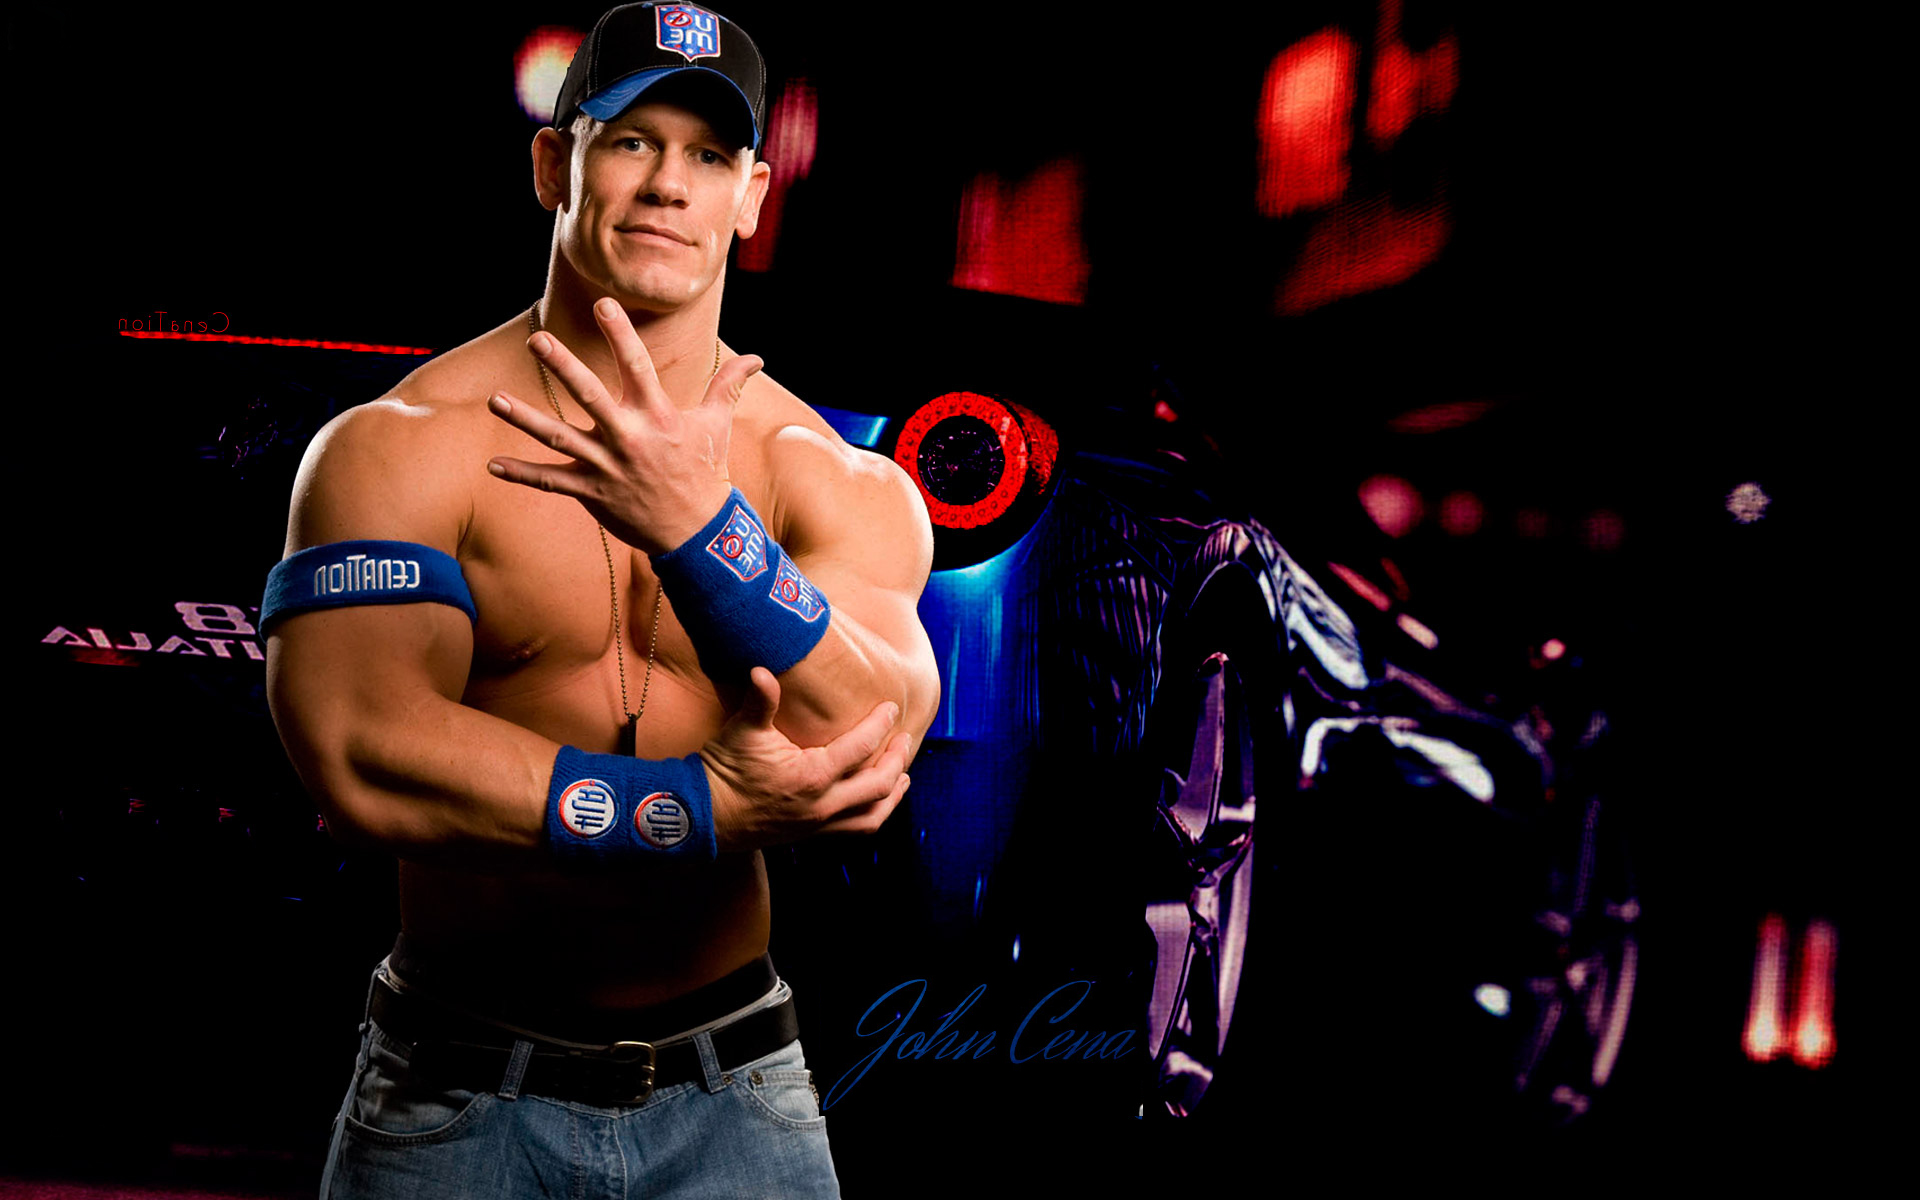 Wwe Superstar John Cena Latest Hd Wallpapers And New